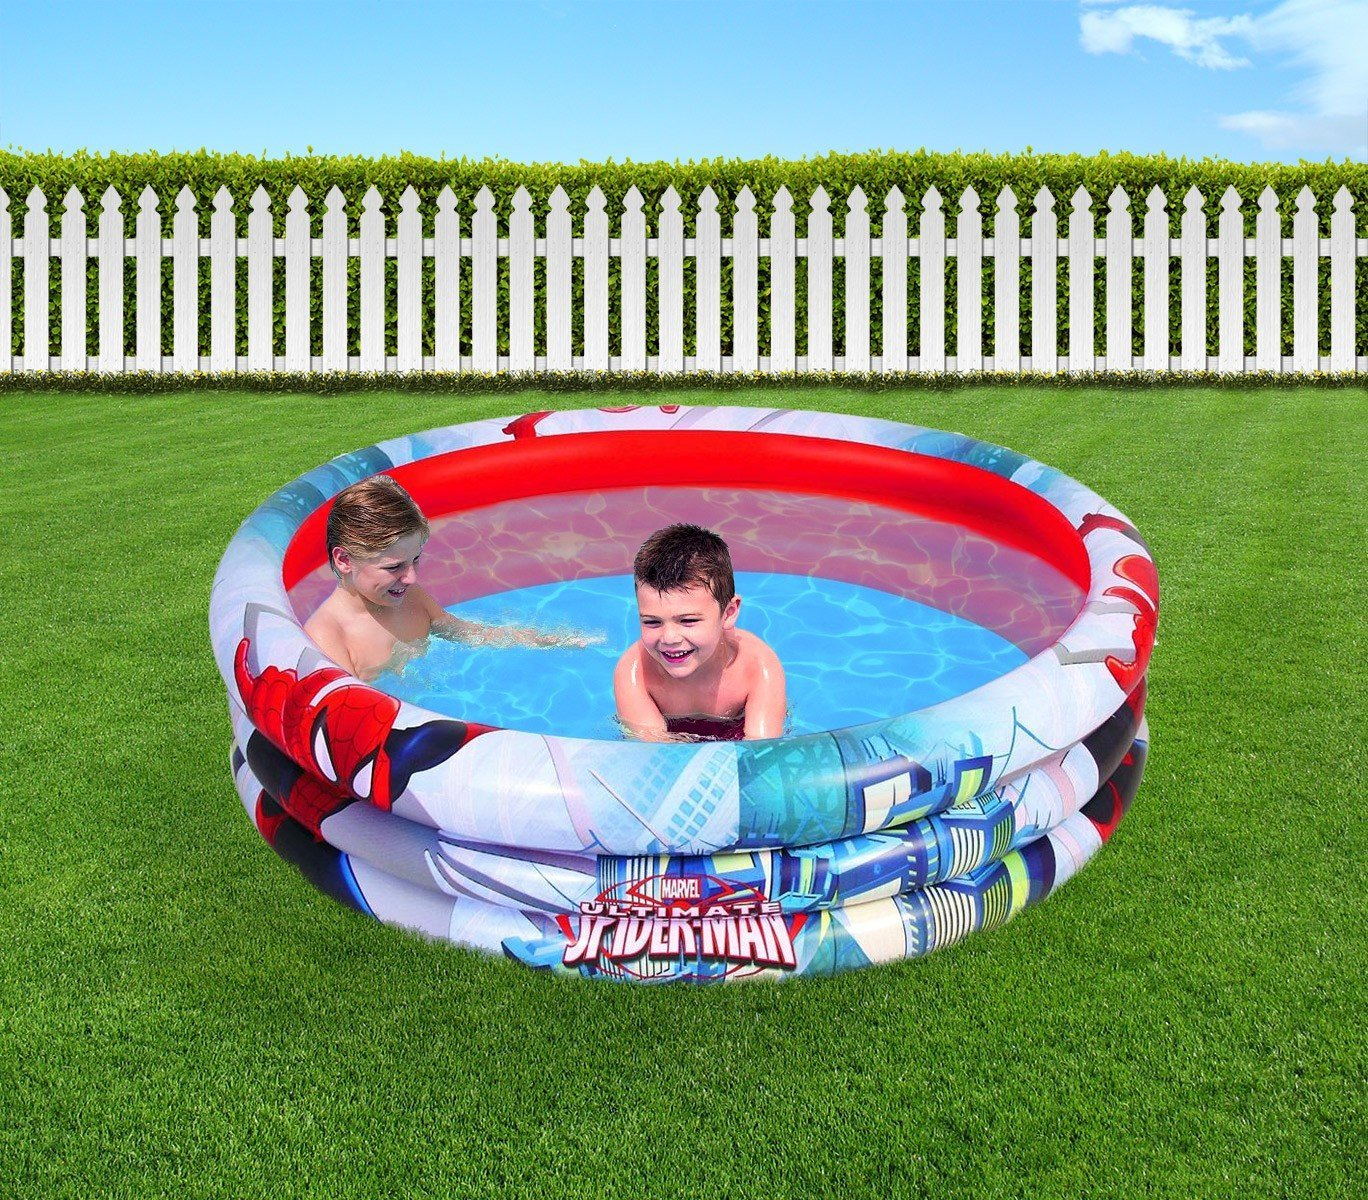 98006 Piscina inflable 152 x 30 cm Bestway Spiderman: Amazon.es: Hogar